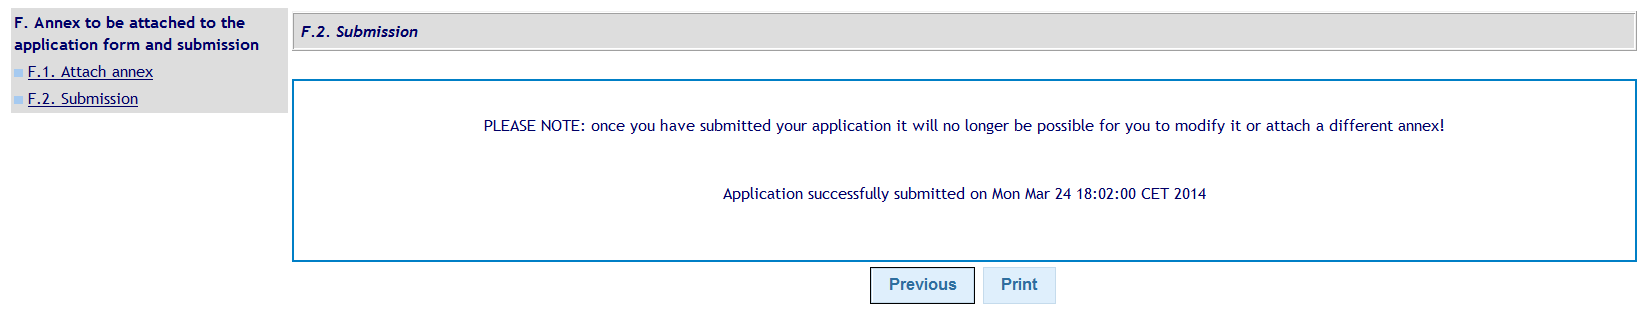 F.2 Submission If the Submit button is active it means that your application is ready for submission.